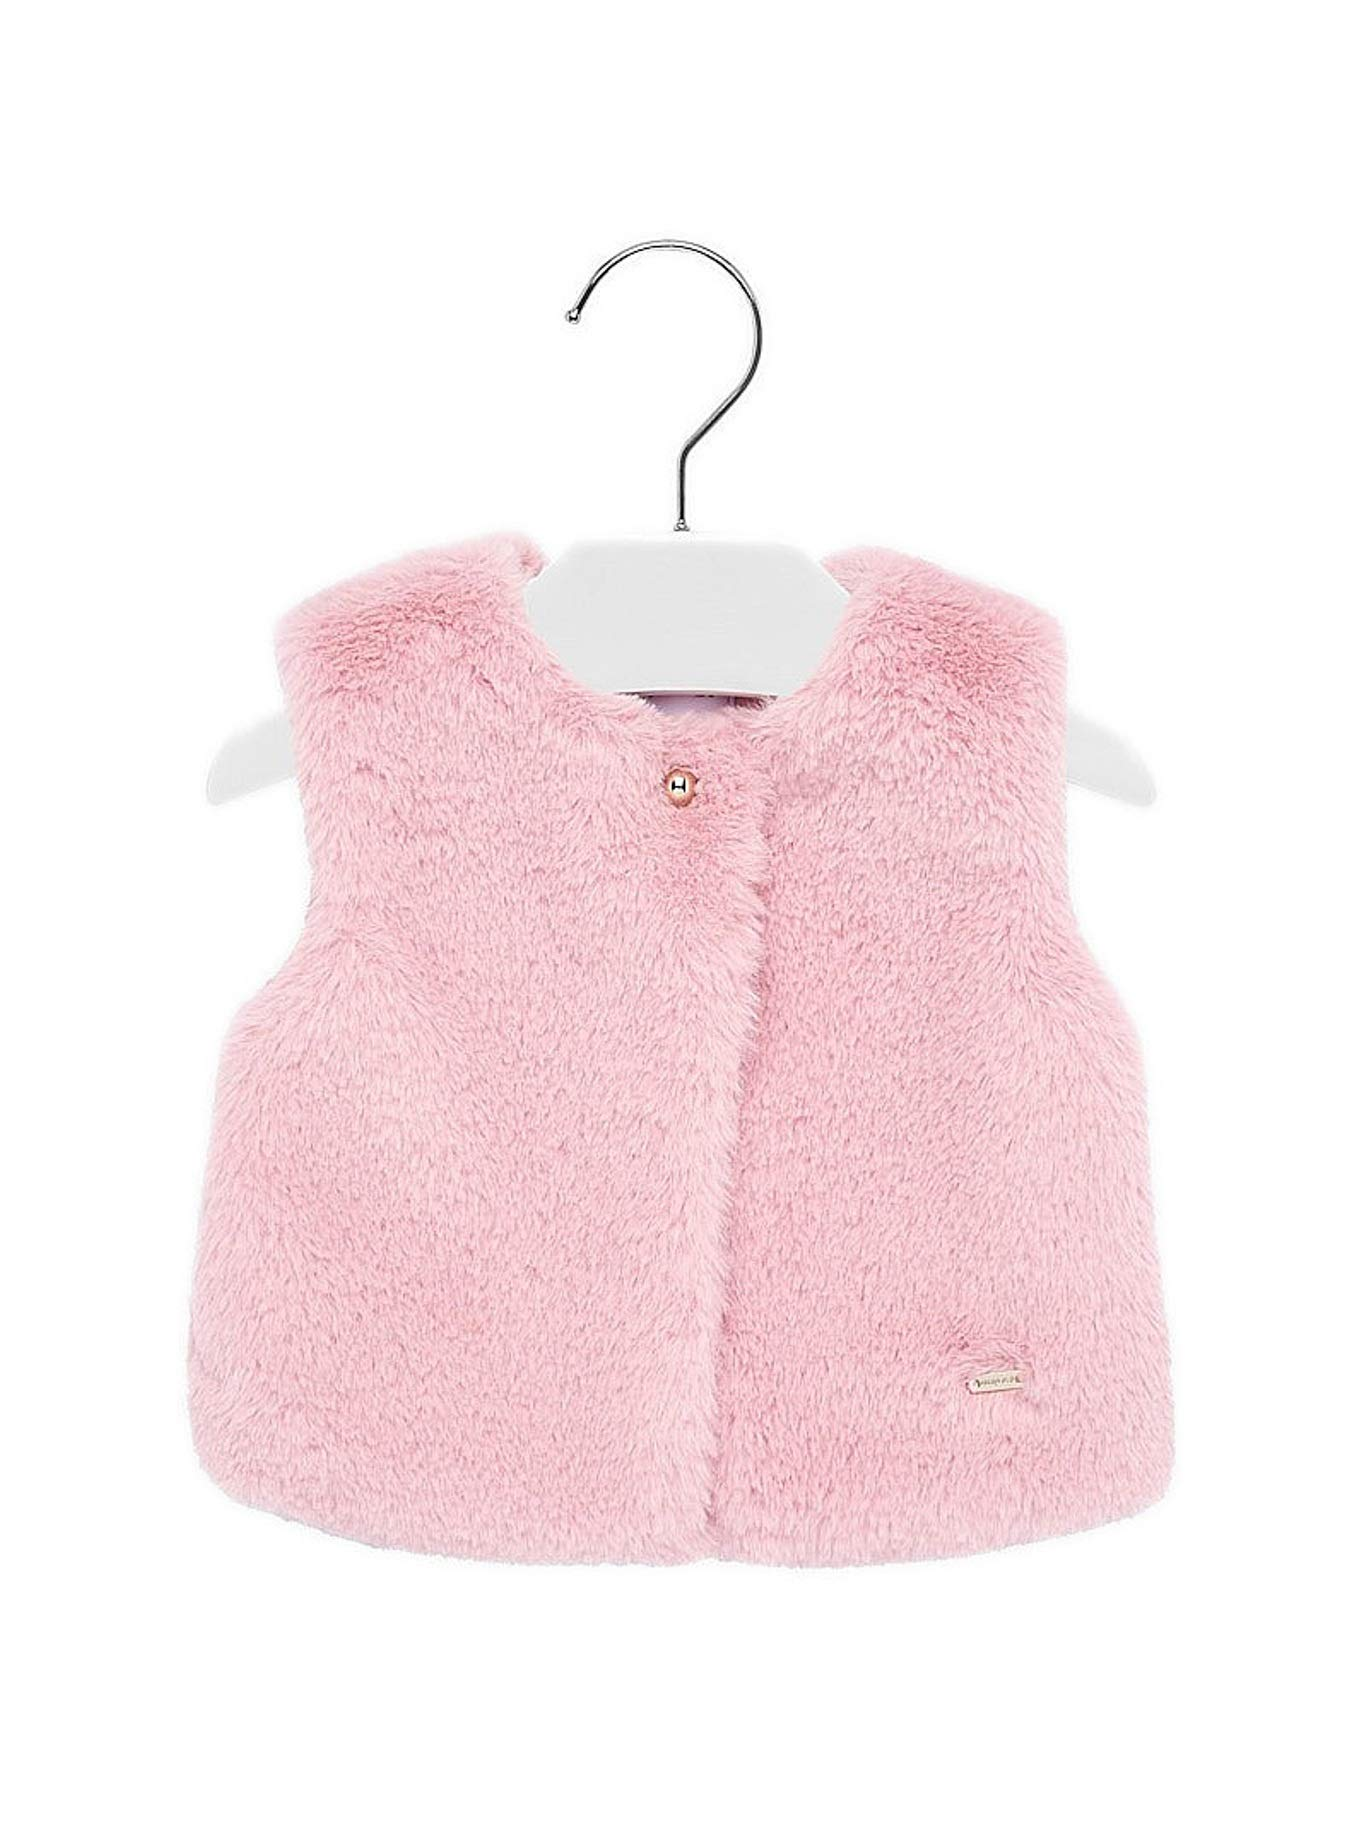 Mayoral 19-02317-076 - Fur Vest for Baby-Girls 24 Months Rose by Mayoral